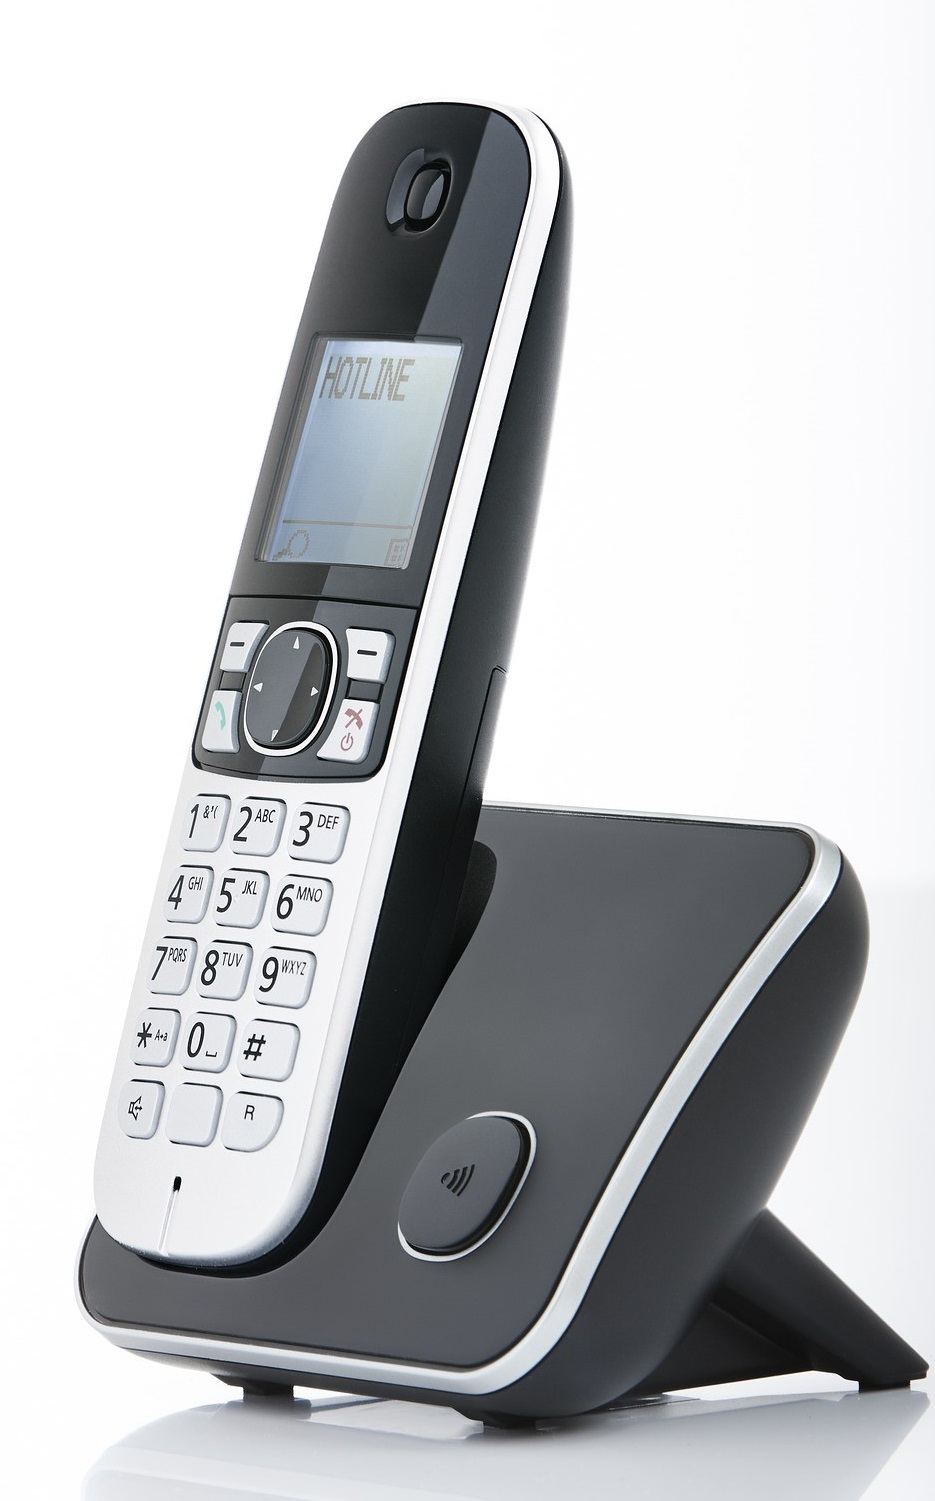 Wireless Phones for Quick Calls